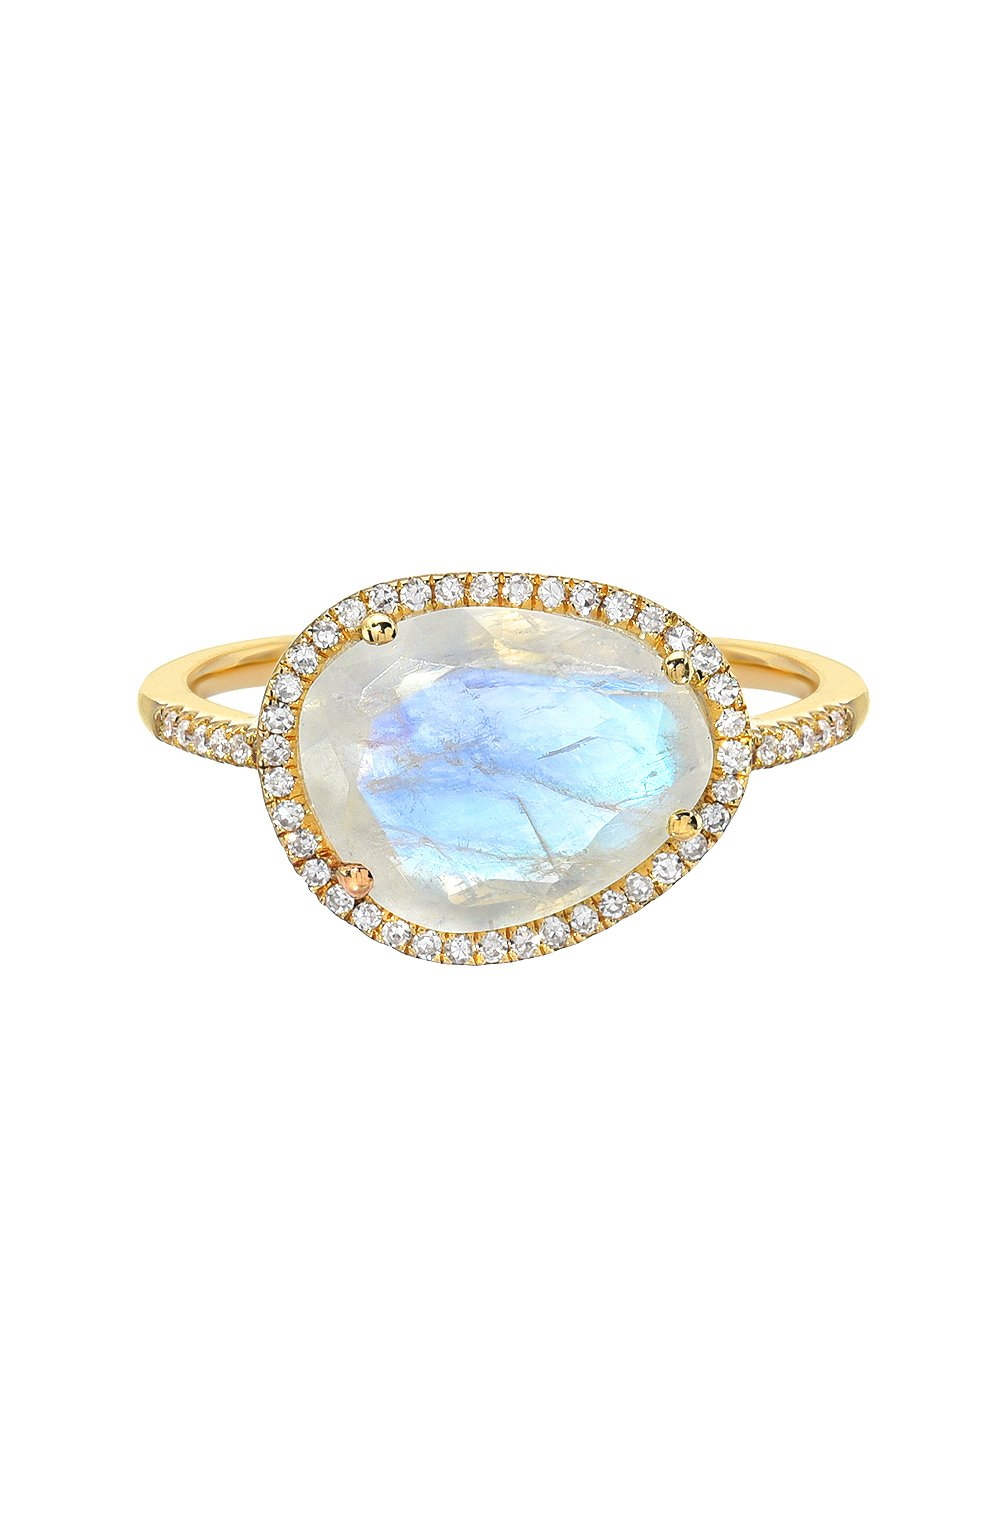 Moonstone ring, 14k gold, pave diamond moonstone by Zoe Lev Jewelry